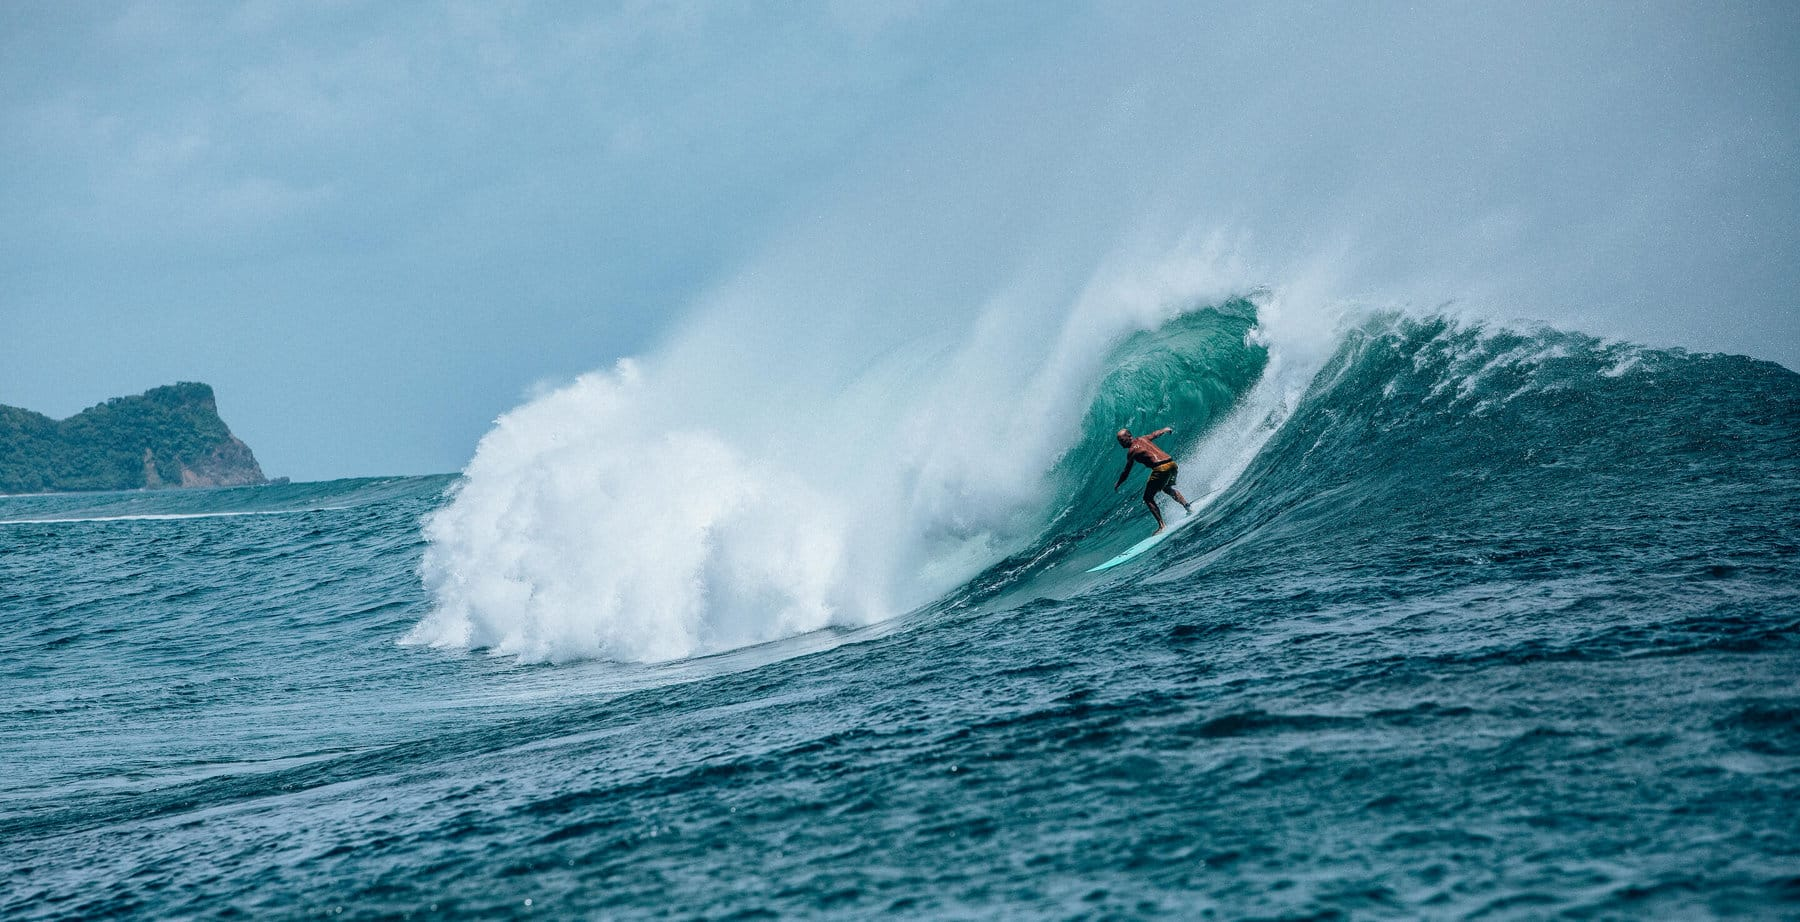 A color photo shows Jeff Johnson wearing board shorts and surfing a large wave in Nicaragua.